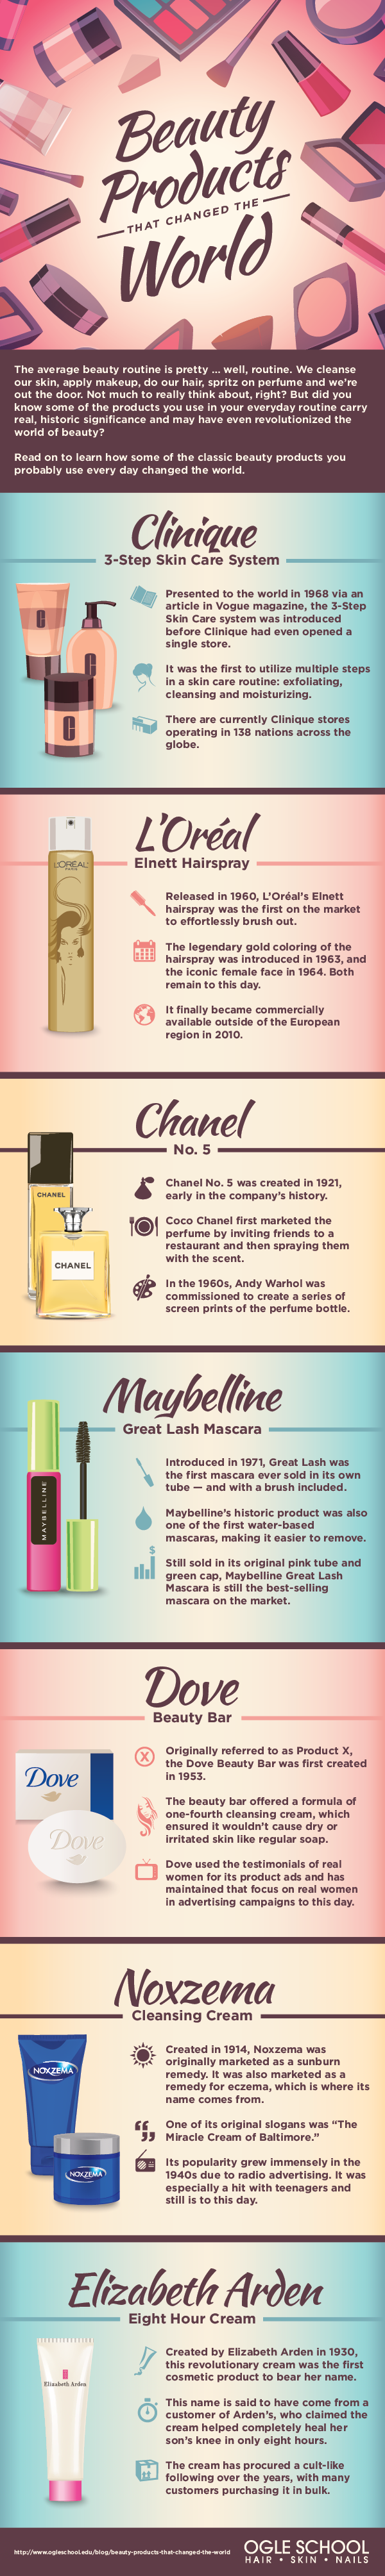 Beauty Products That Changed the World by Ogle School